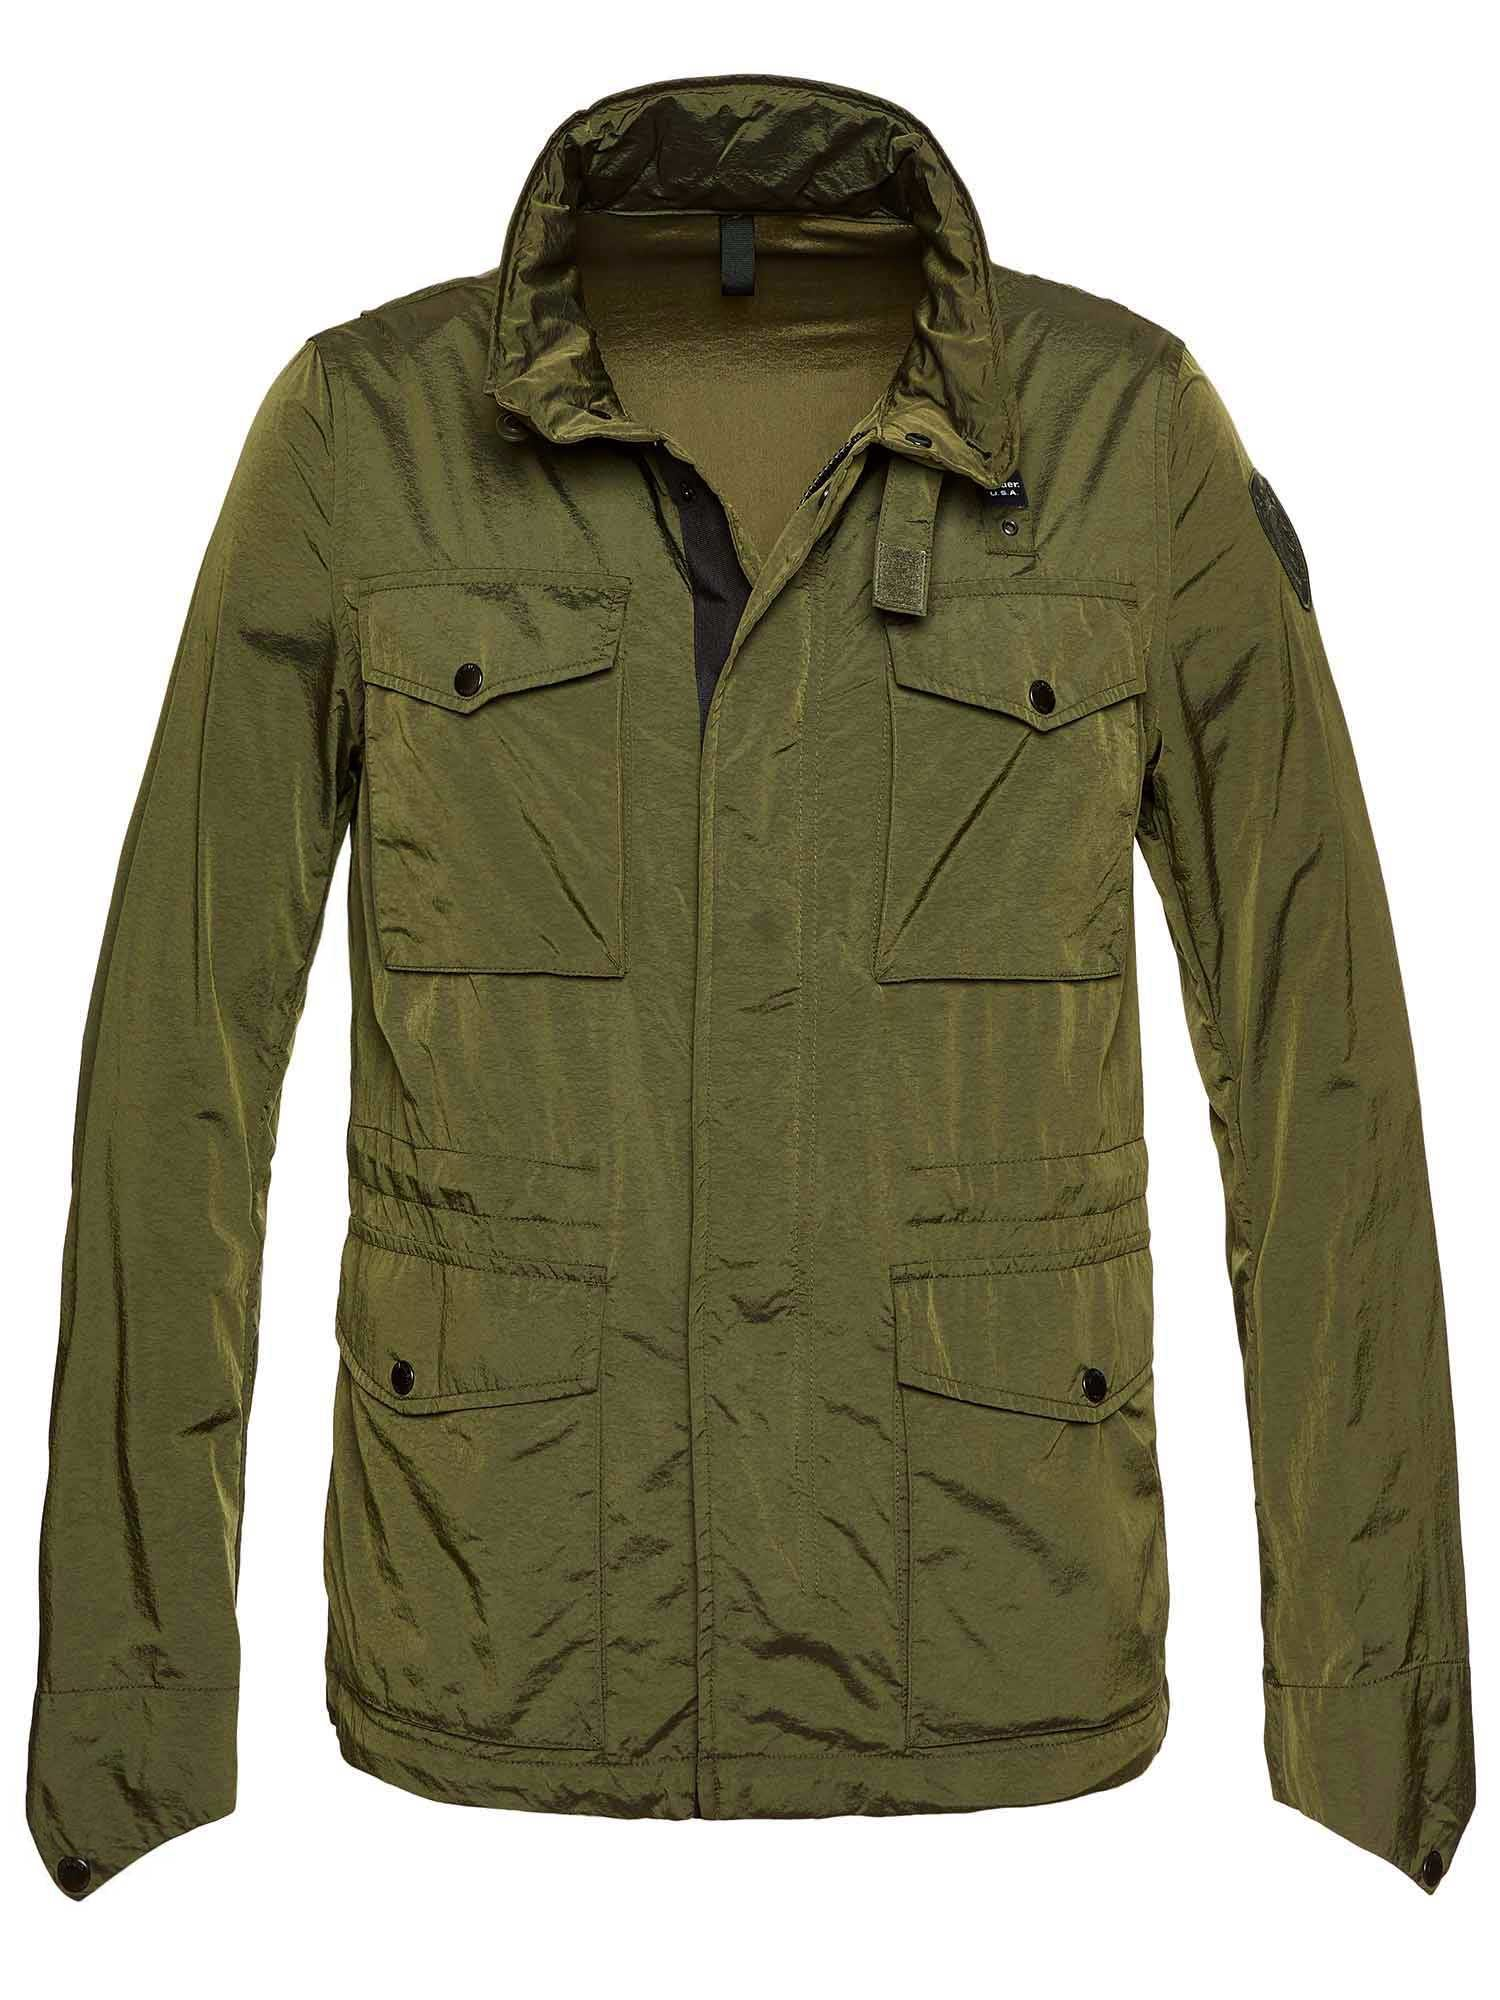 Blauer - FIELD JACKET AUS CHANGIERENDEM NYLON MATTHEW - Alpine Green - Blauer